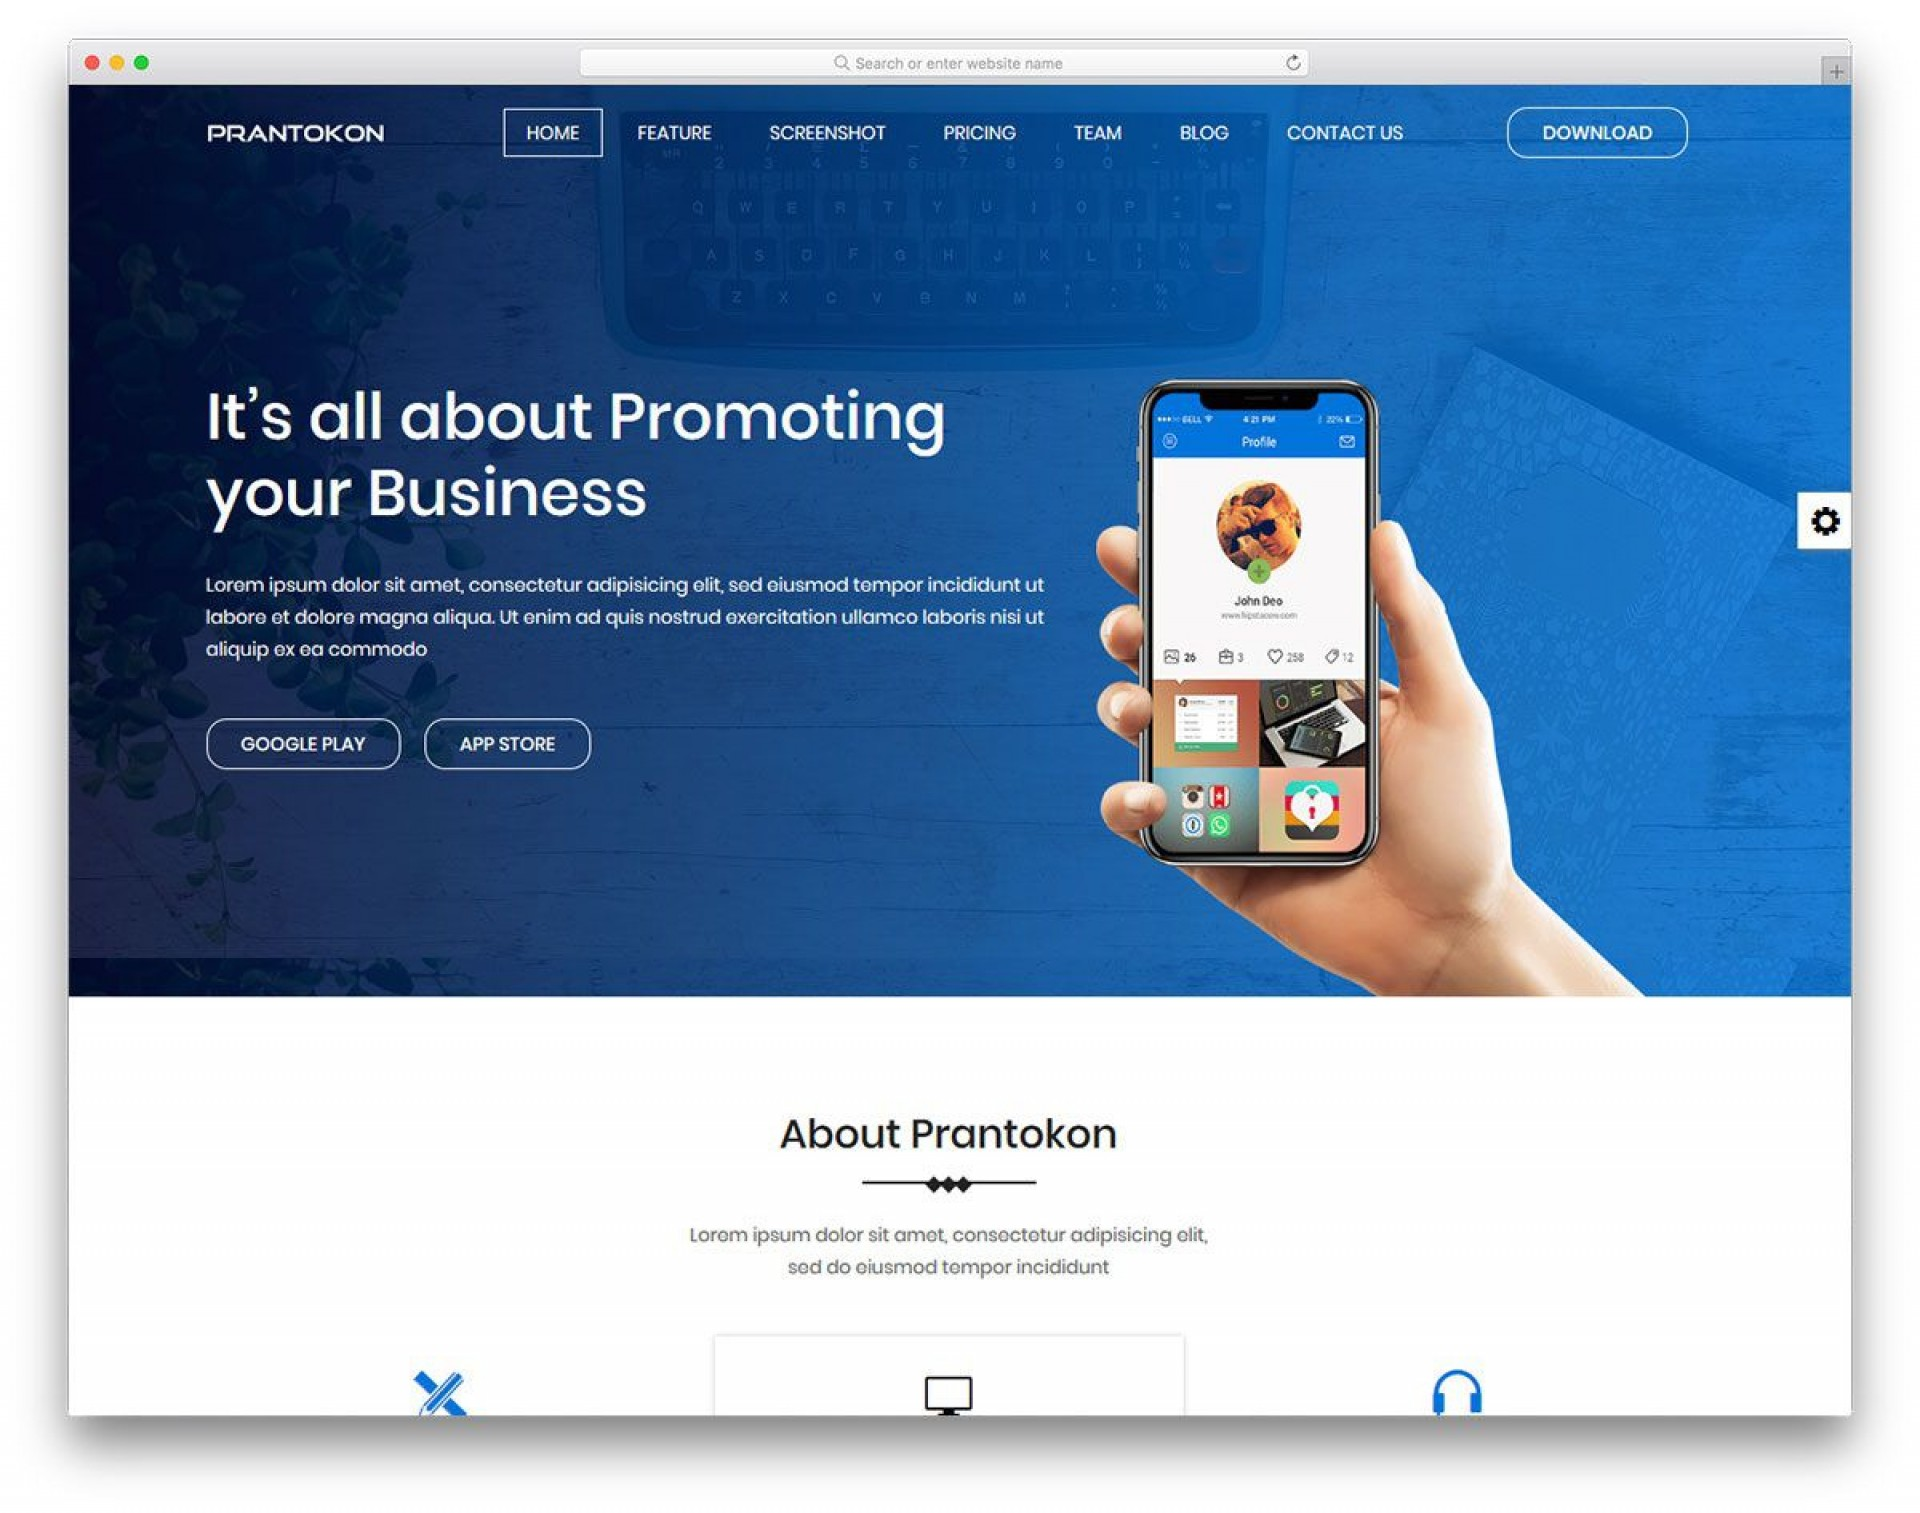 008 Stupendou Single Page Website Template Design  Templates Free Download One Html1920